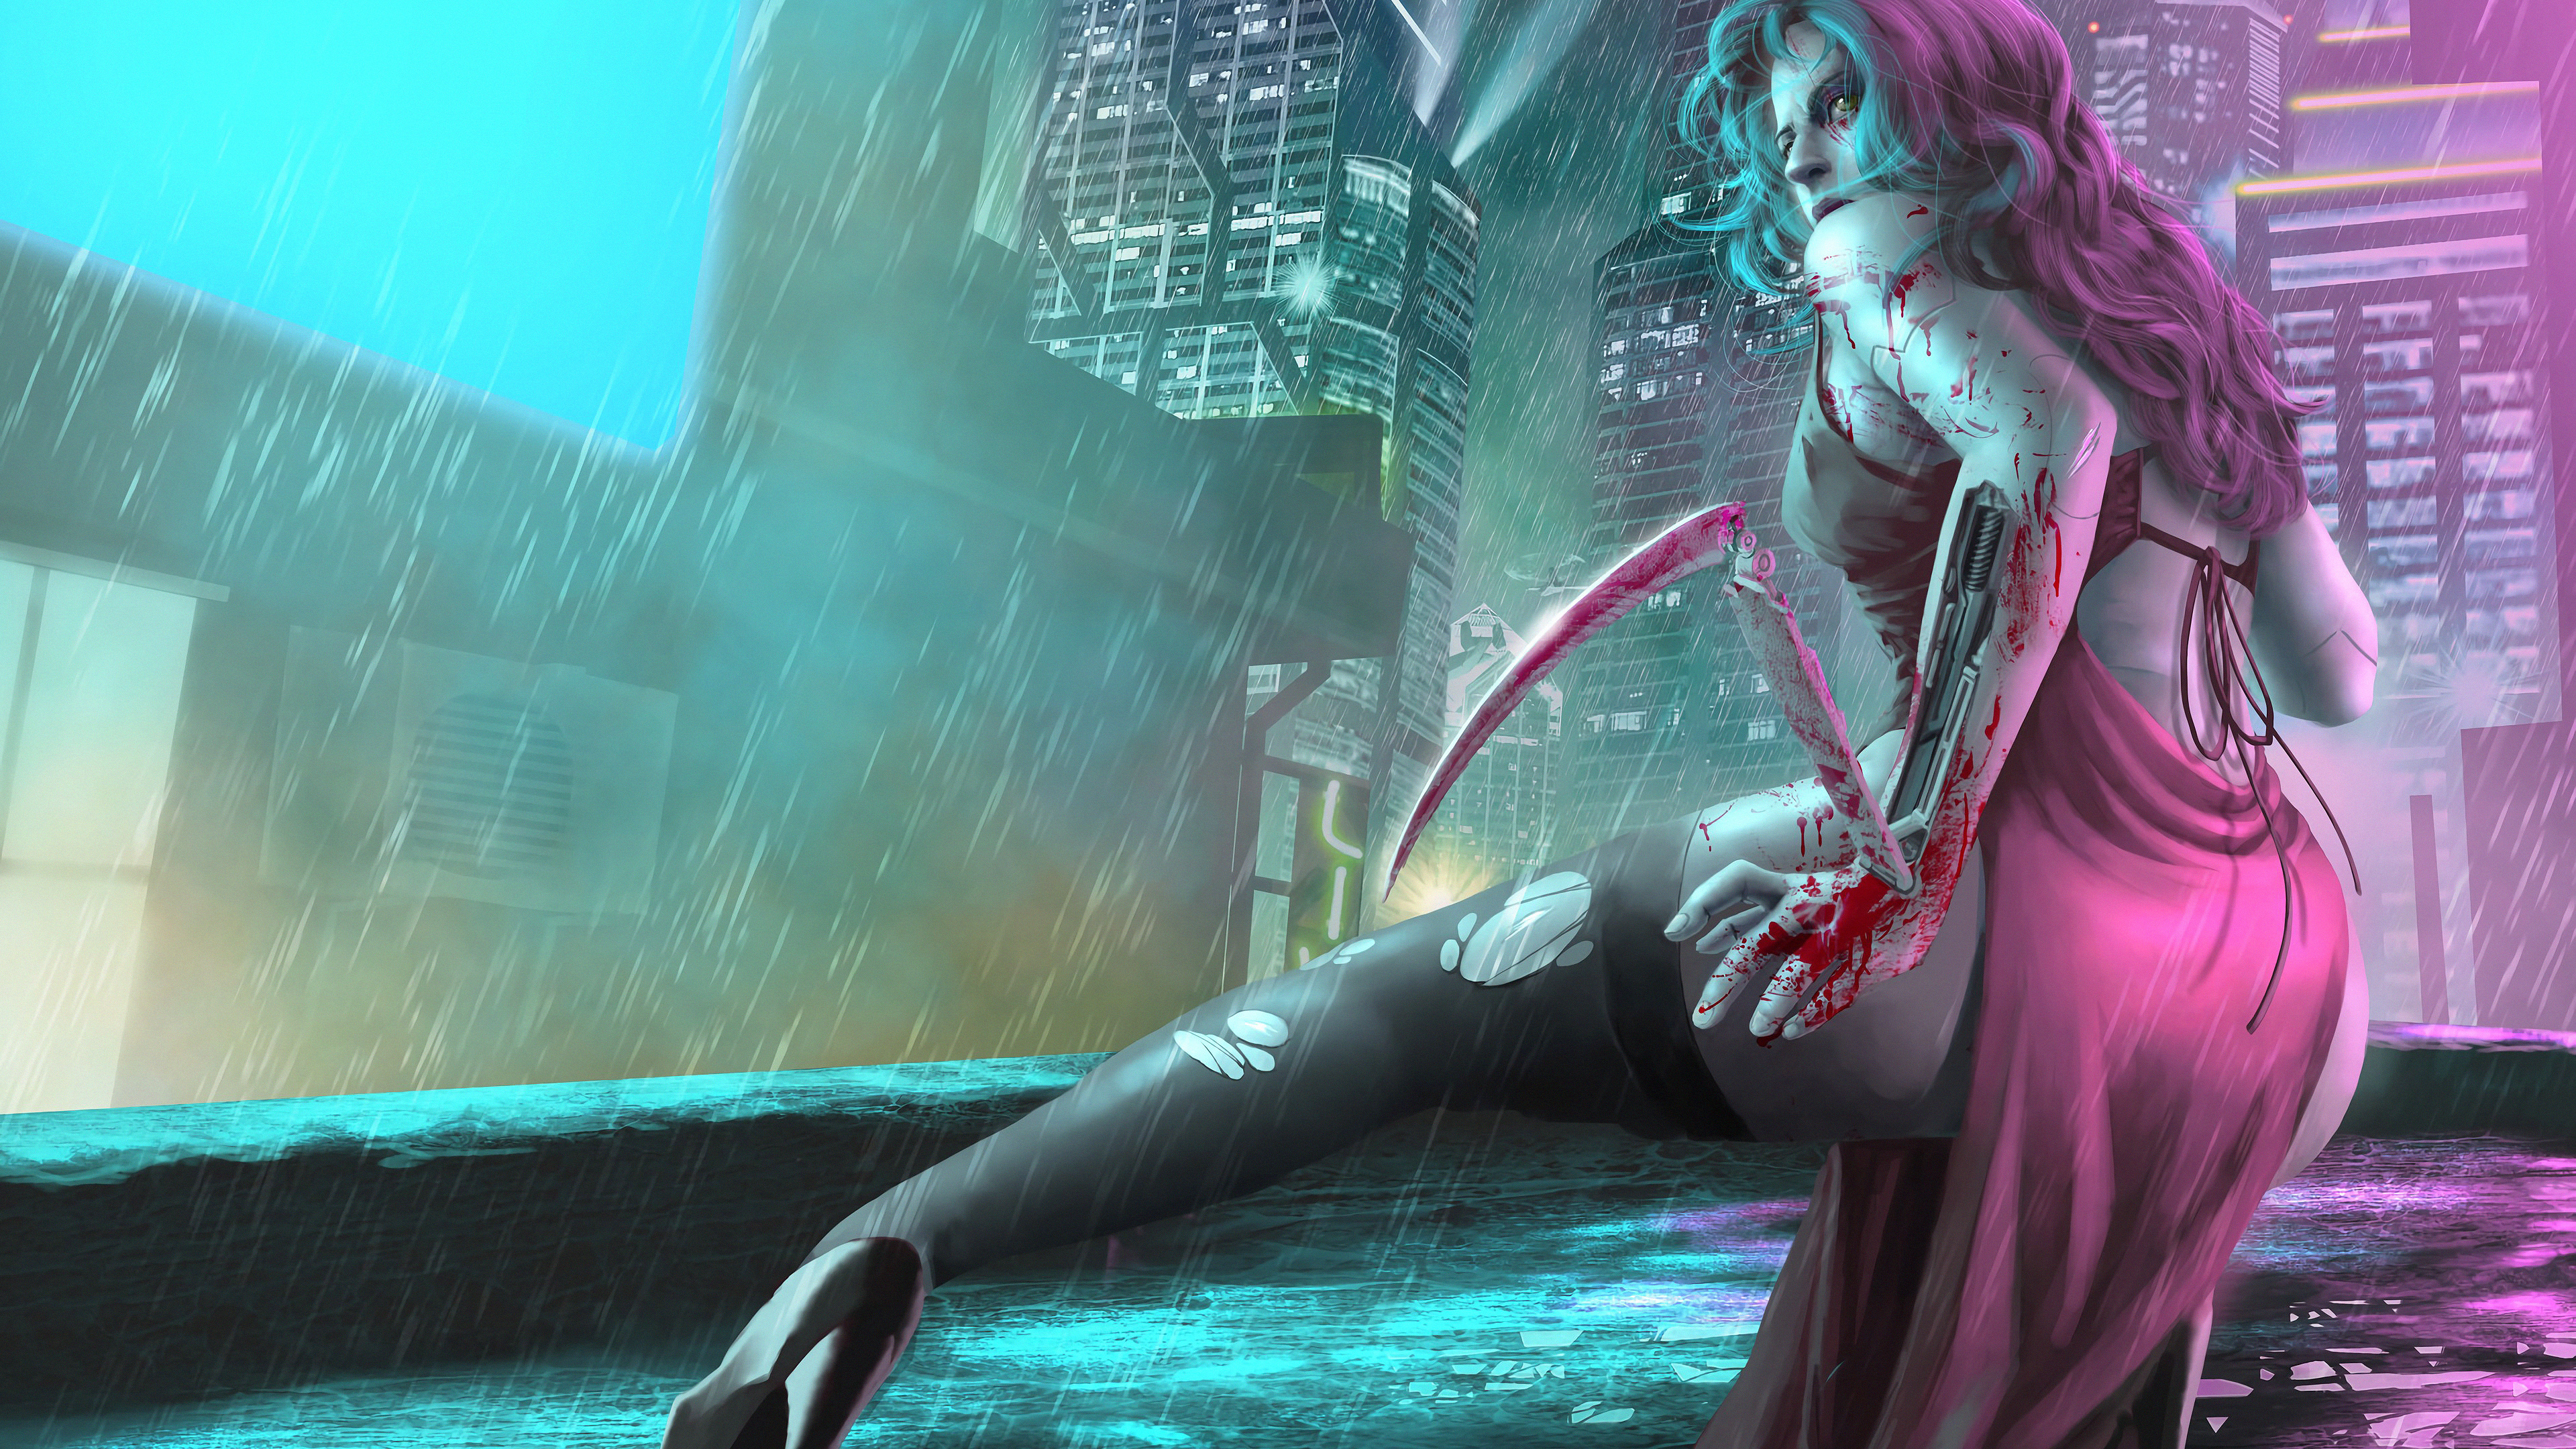 3840x2160 Cyberpunk Girl Art 4k HD 4k Wallpapers, Images ...